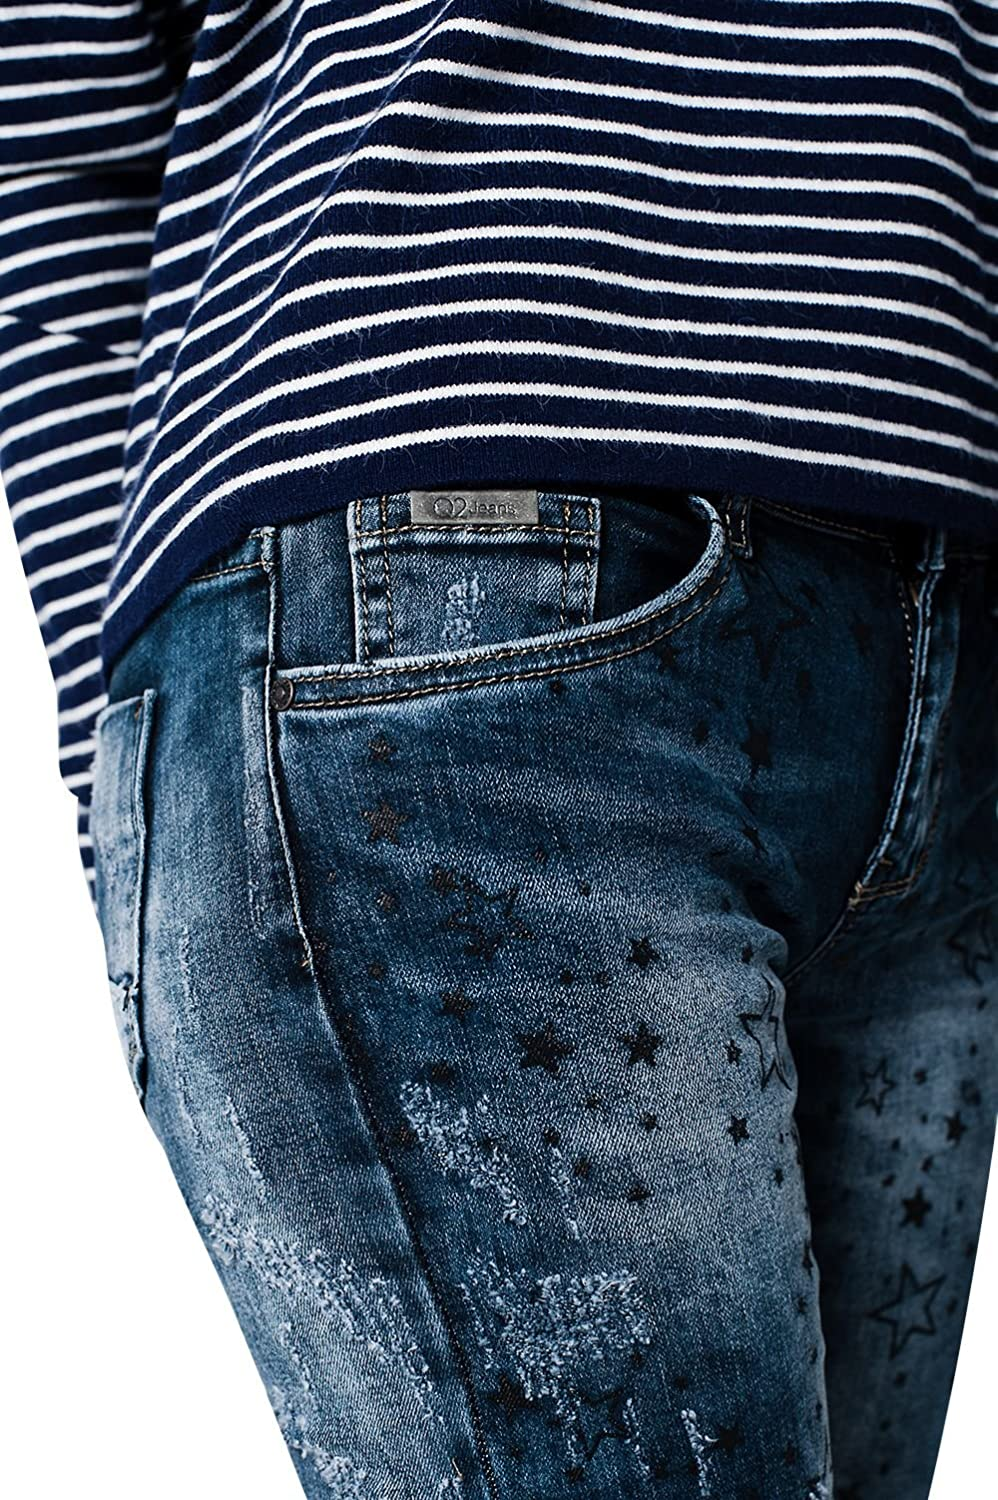 Q2 Women's Dark washed jeans with distressed star details